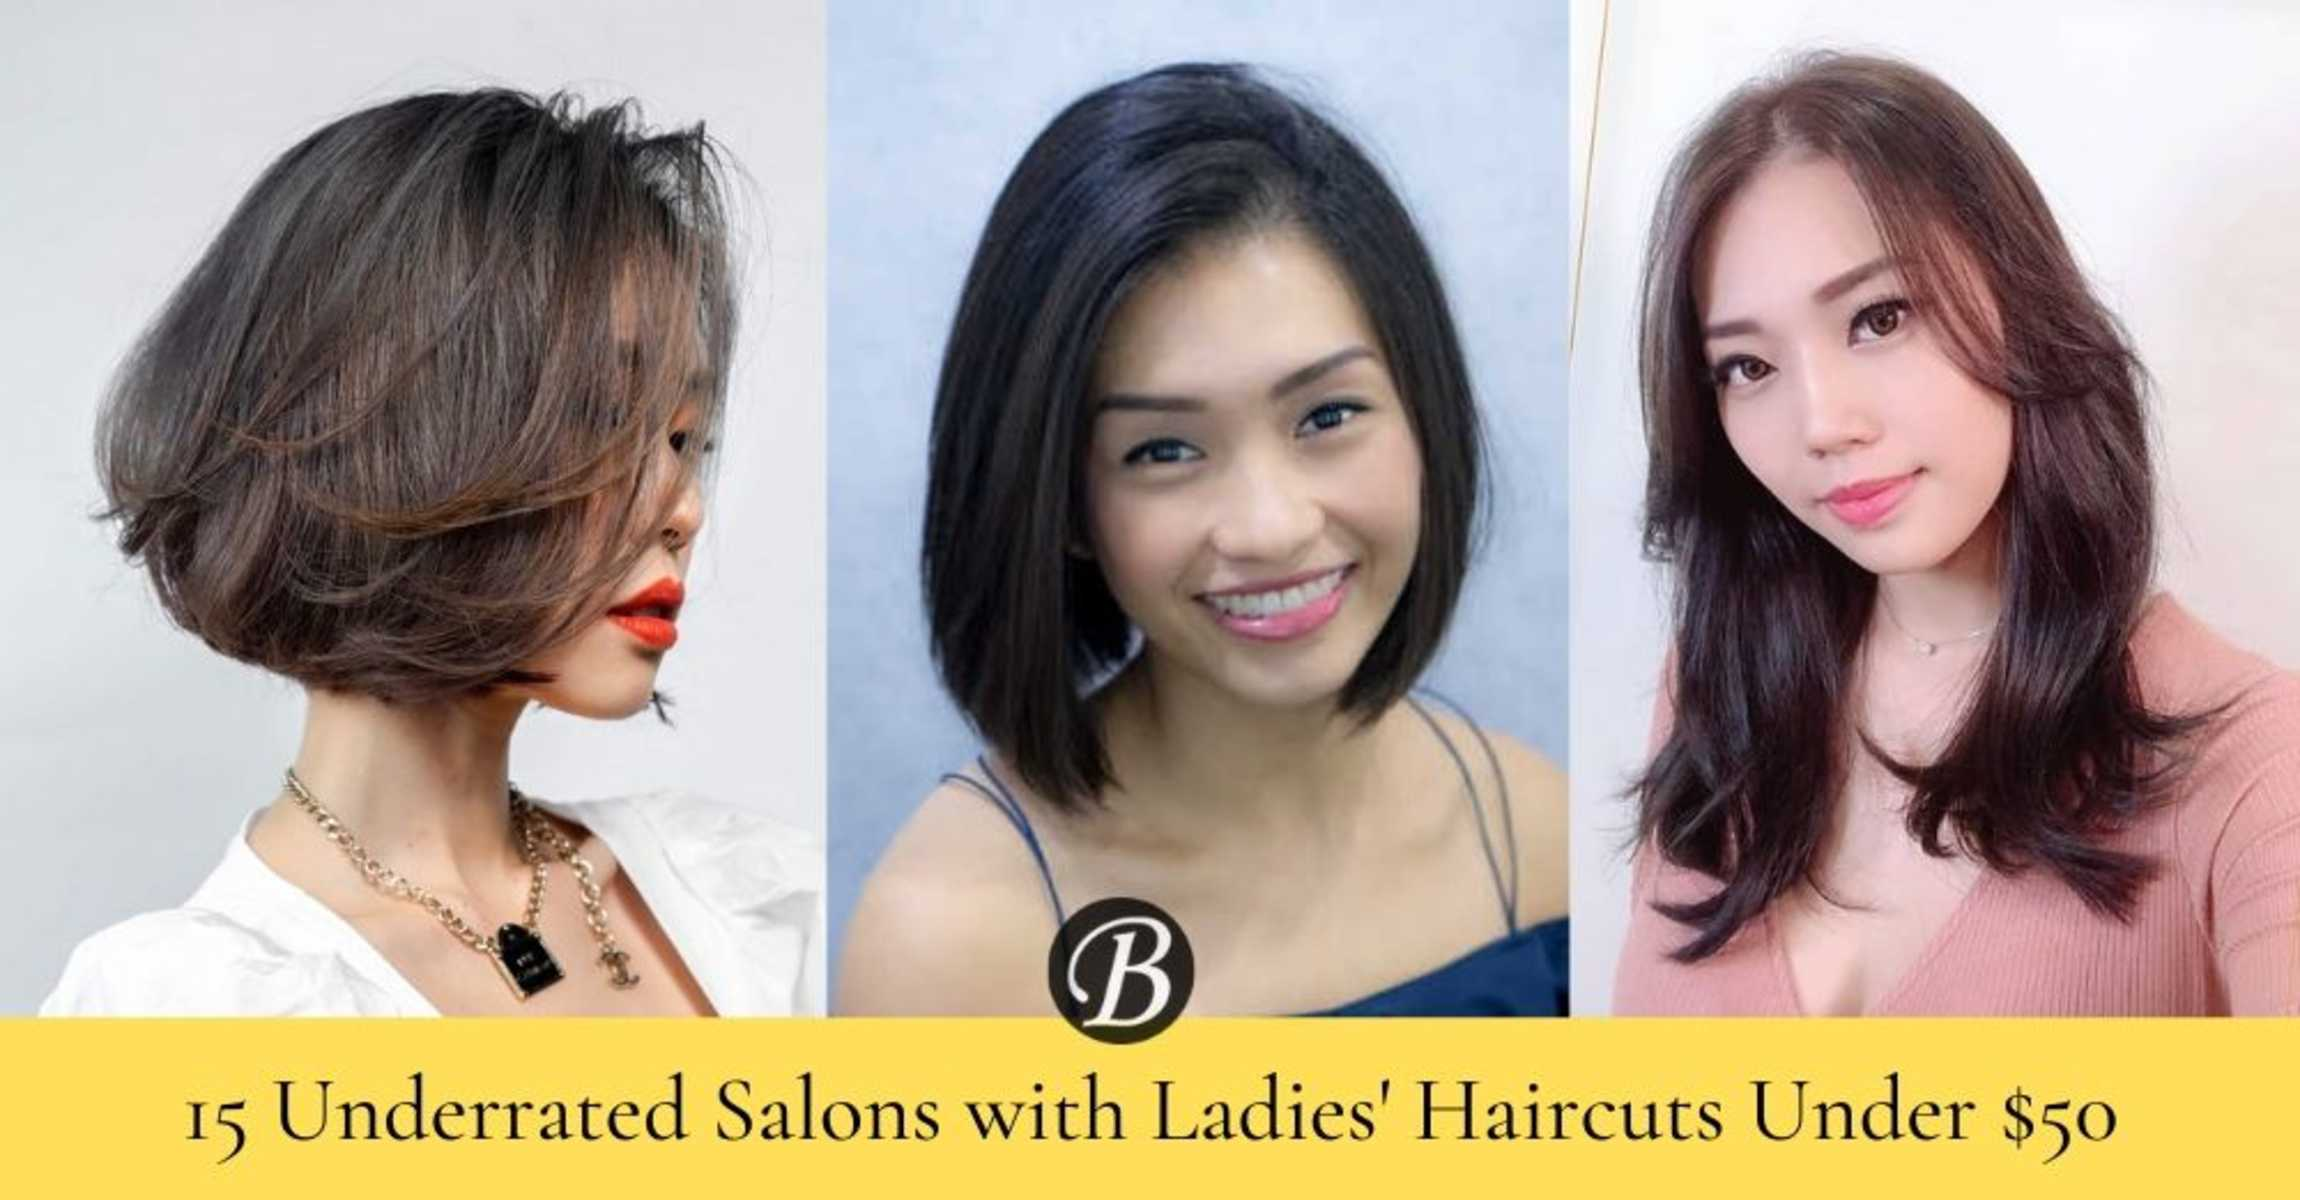 14 Underrated Hair Salons With Ladies Haircuts Under 50 In Singapore